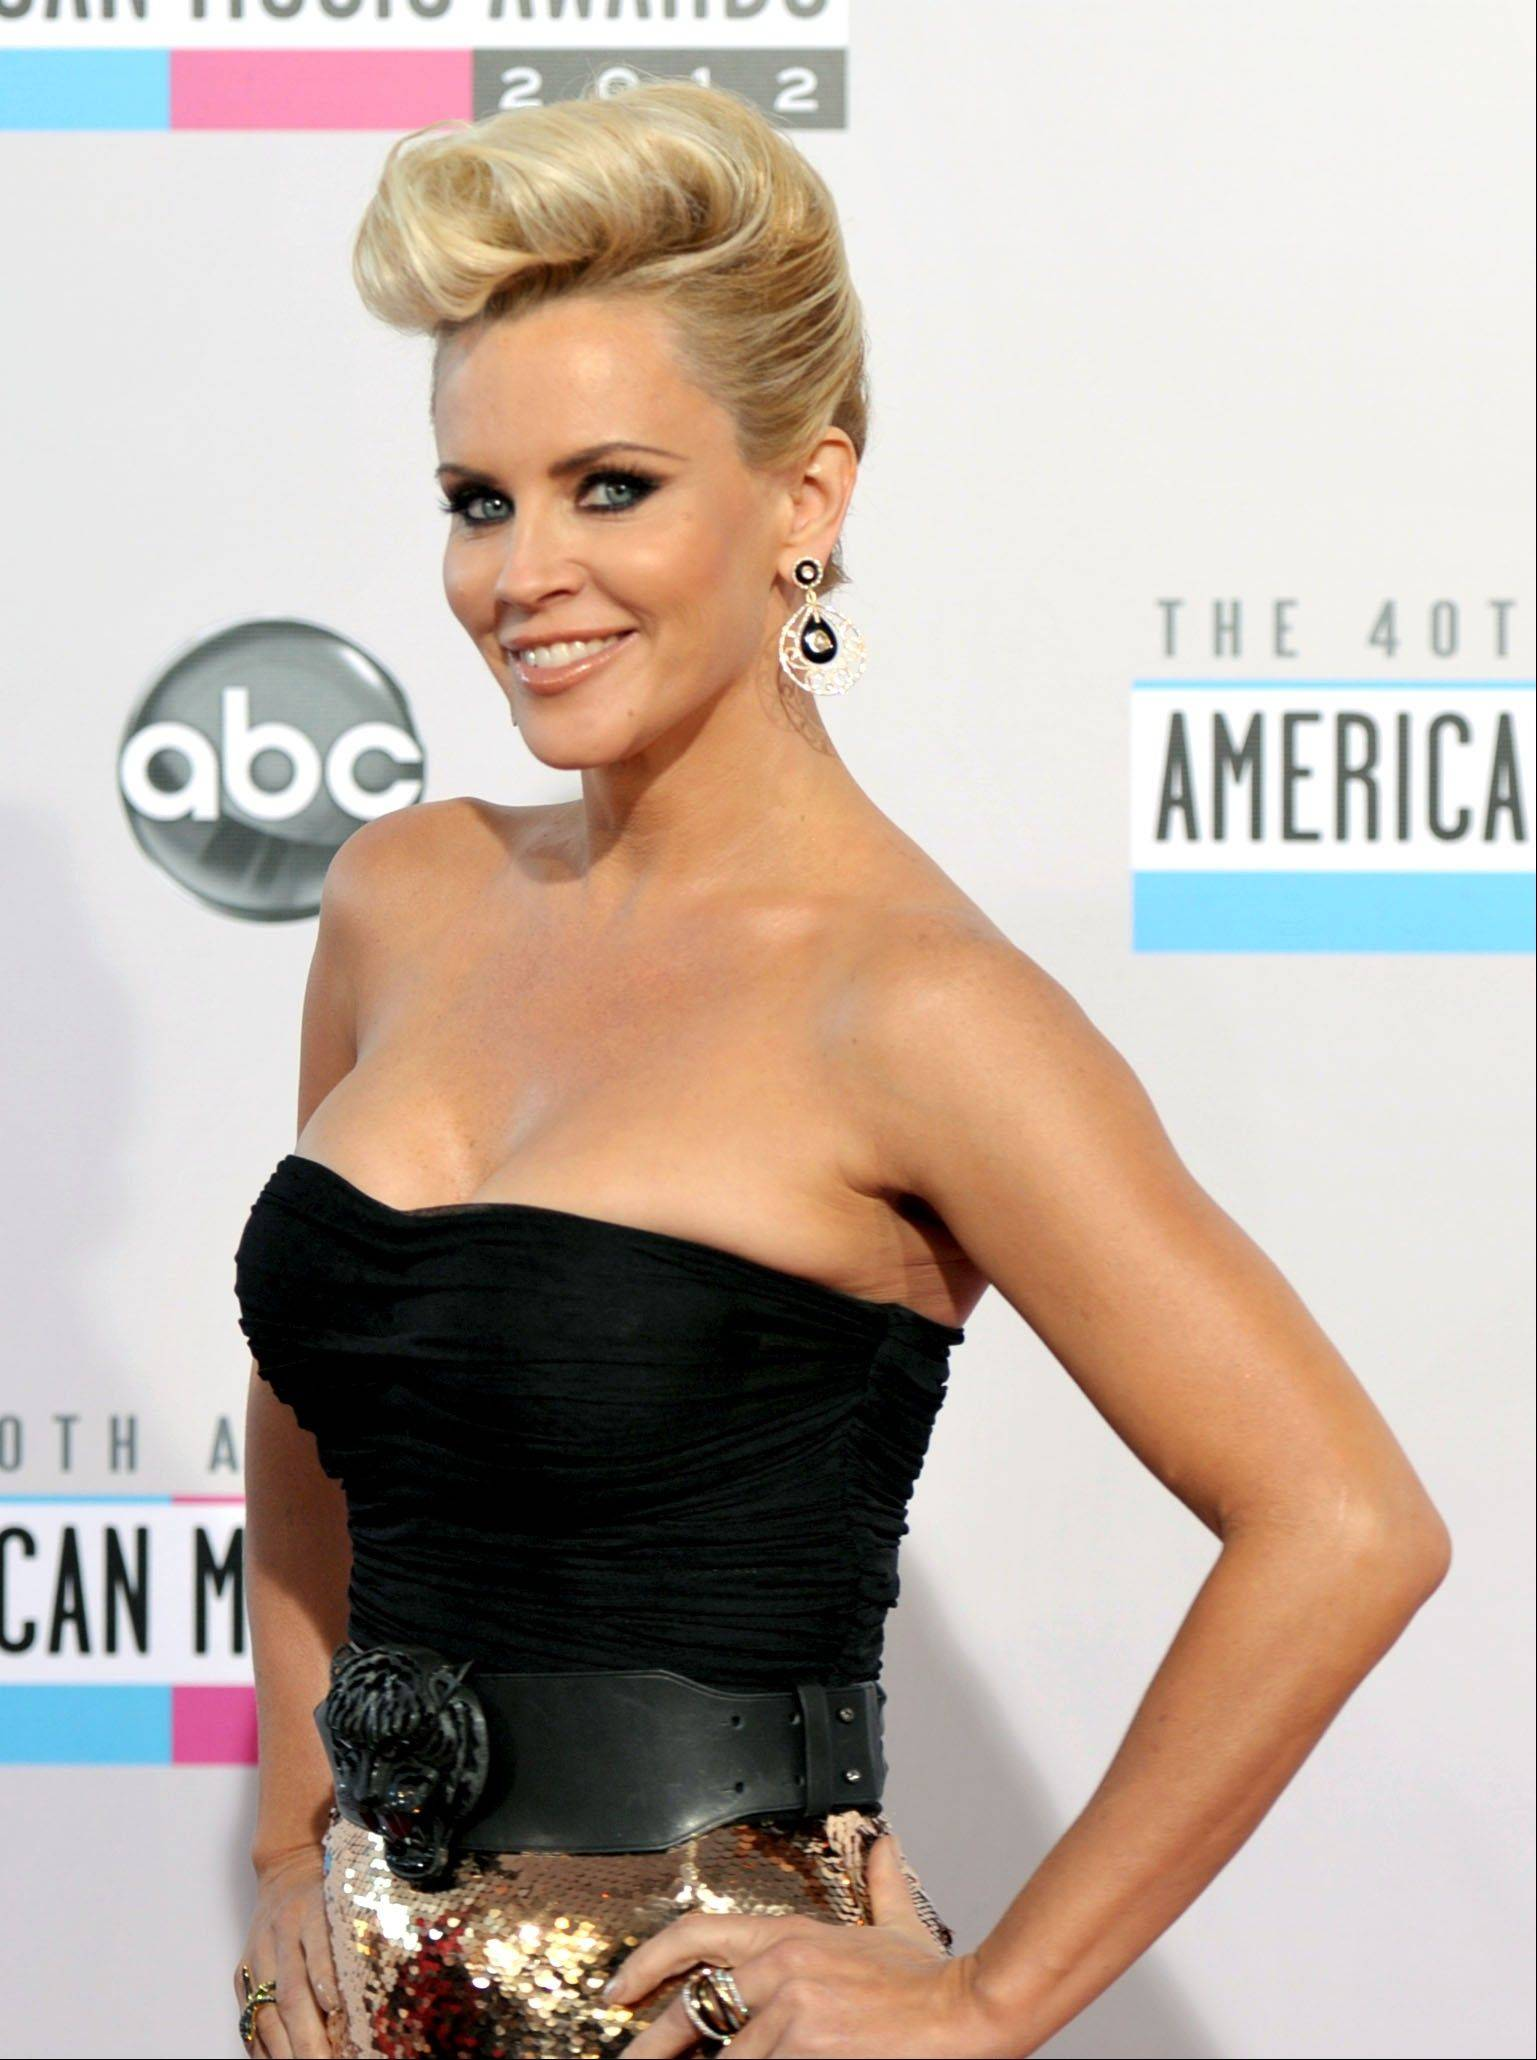 Jenny McCarthy arrives at the 40th Anniversary American Music Awards on Sunday, Nov. 18, 2012, in Los Angeles.